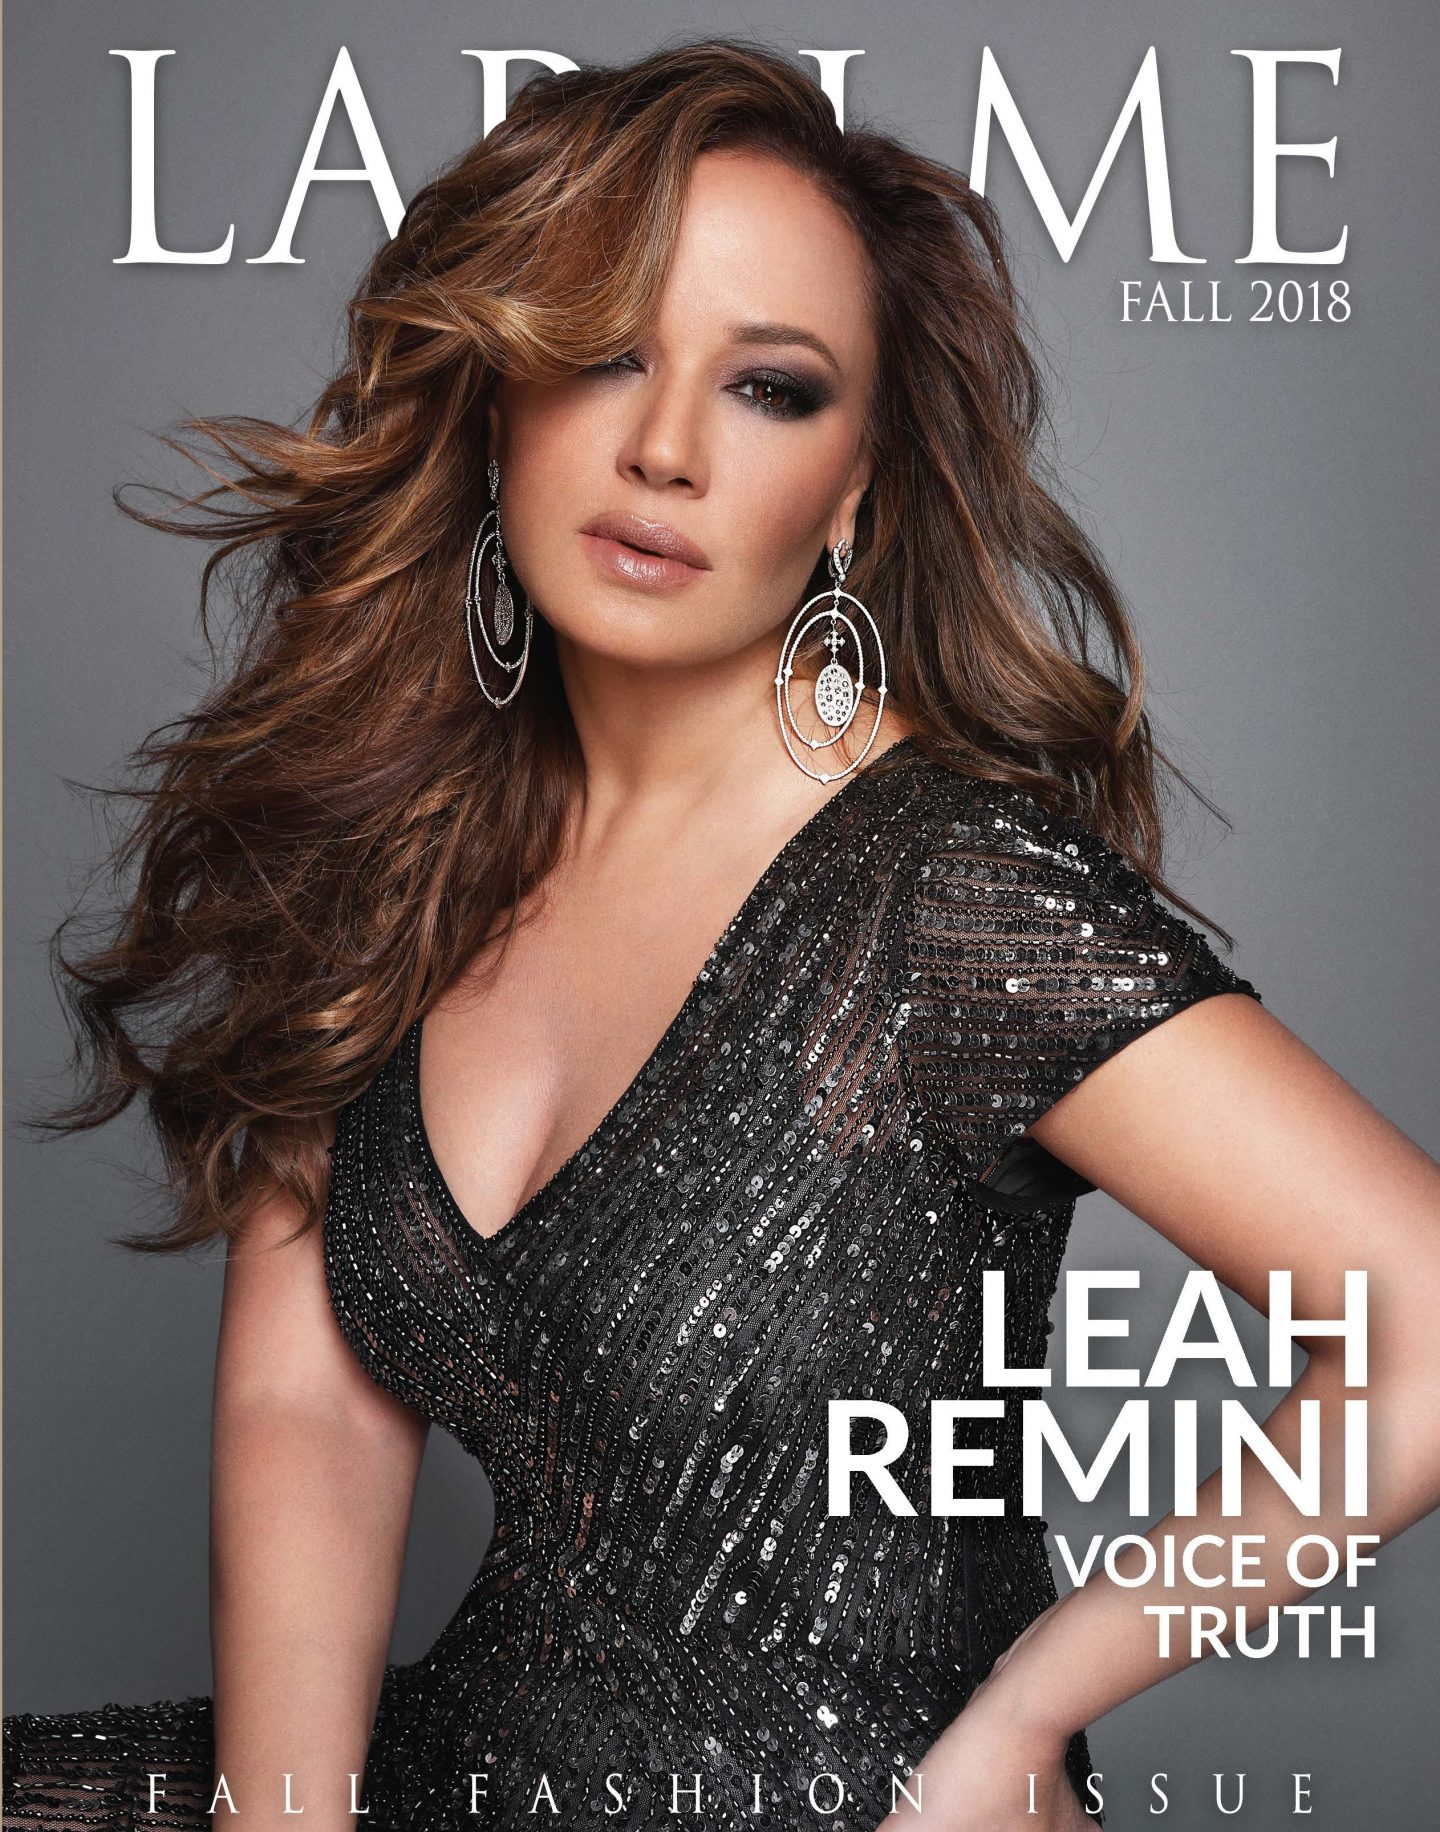 Leah Remini's Exclusive Photo Shoot with Lapalme Magazine